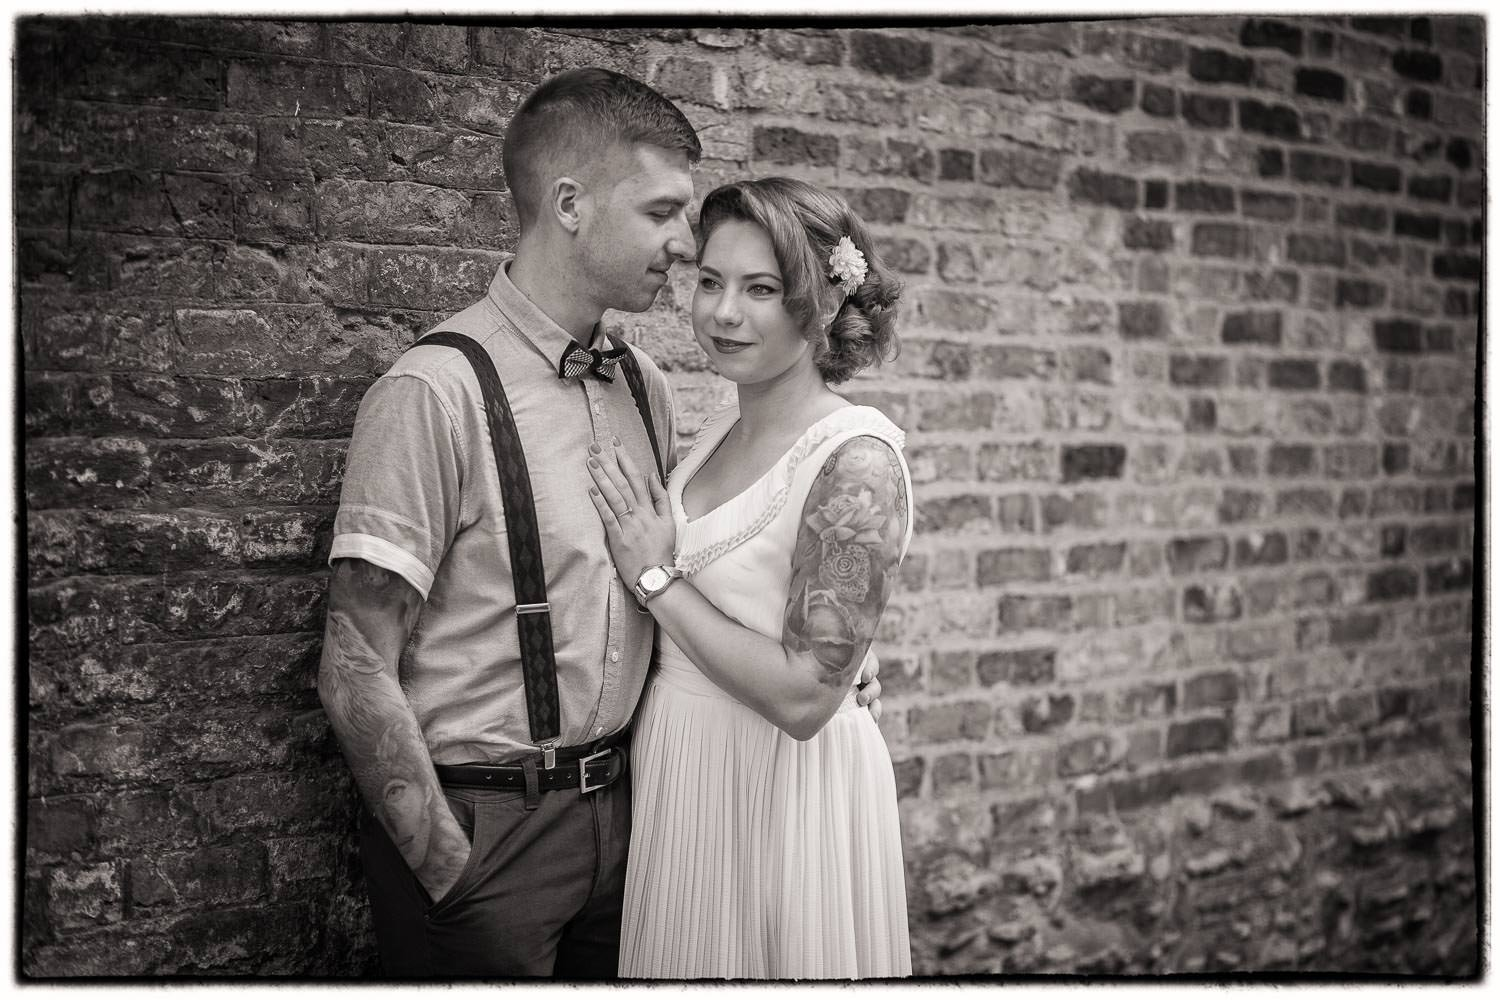 A favourite shot in black and white from a pre-wedding shoot photographed in cambridge. Couple are leaning against a brick wall during their shoot.